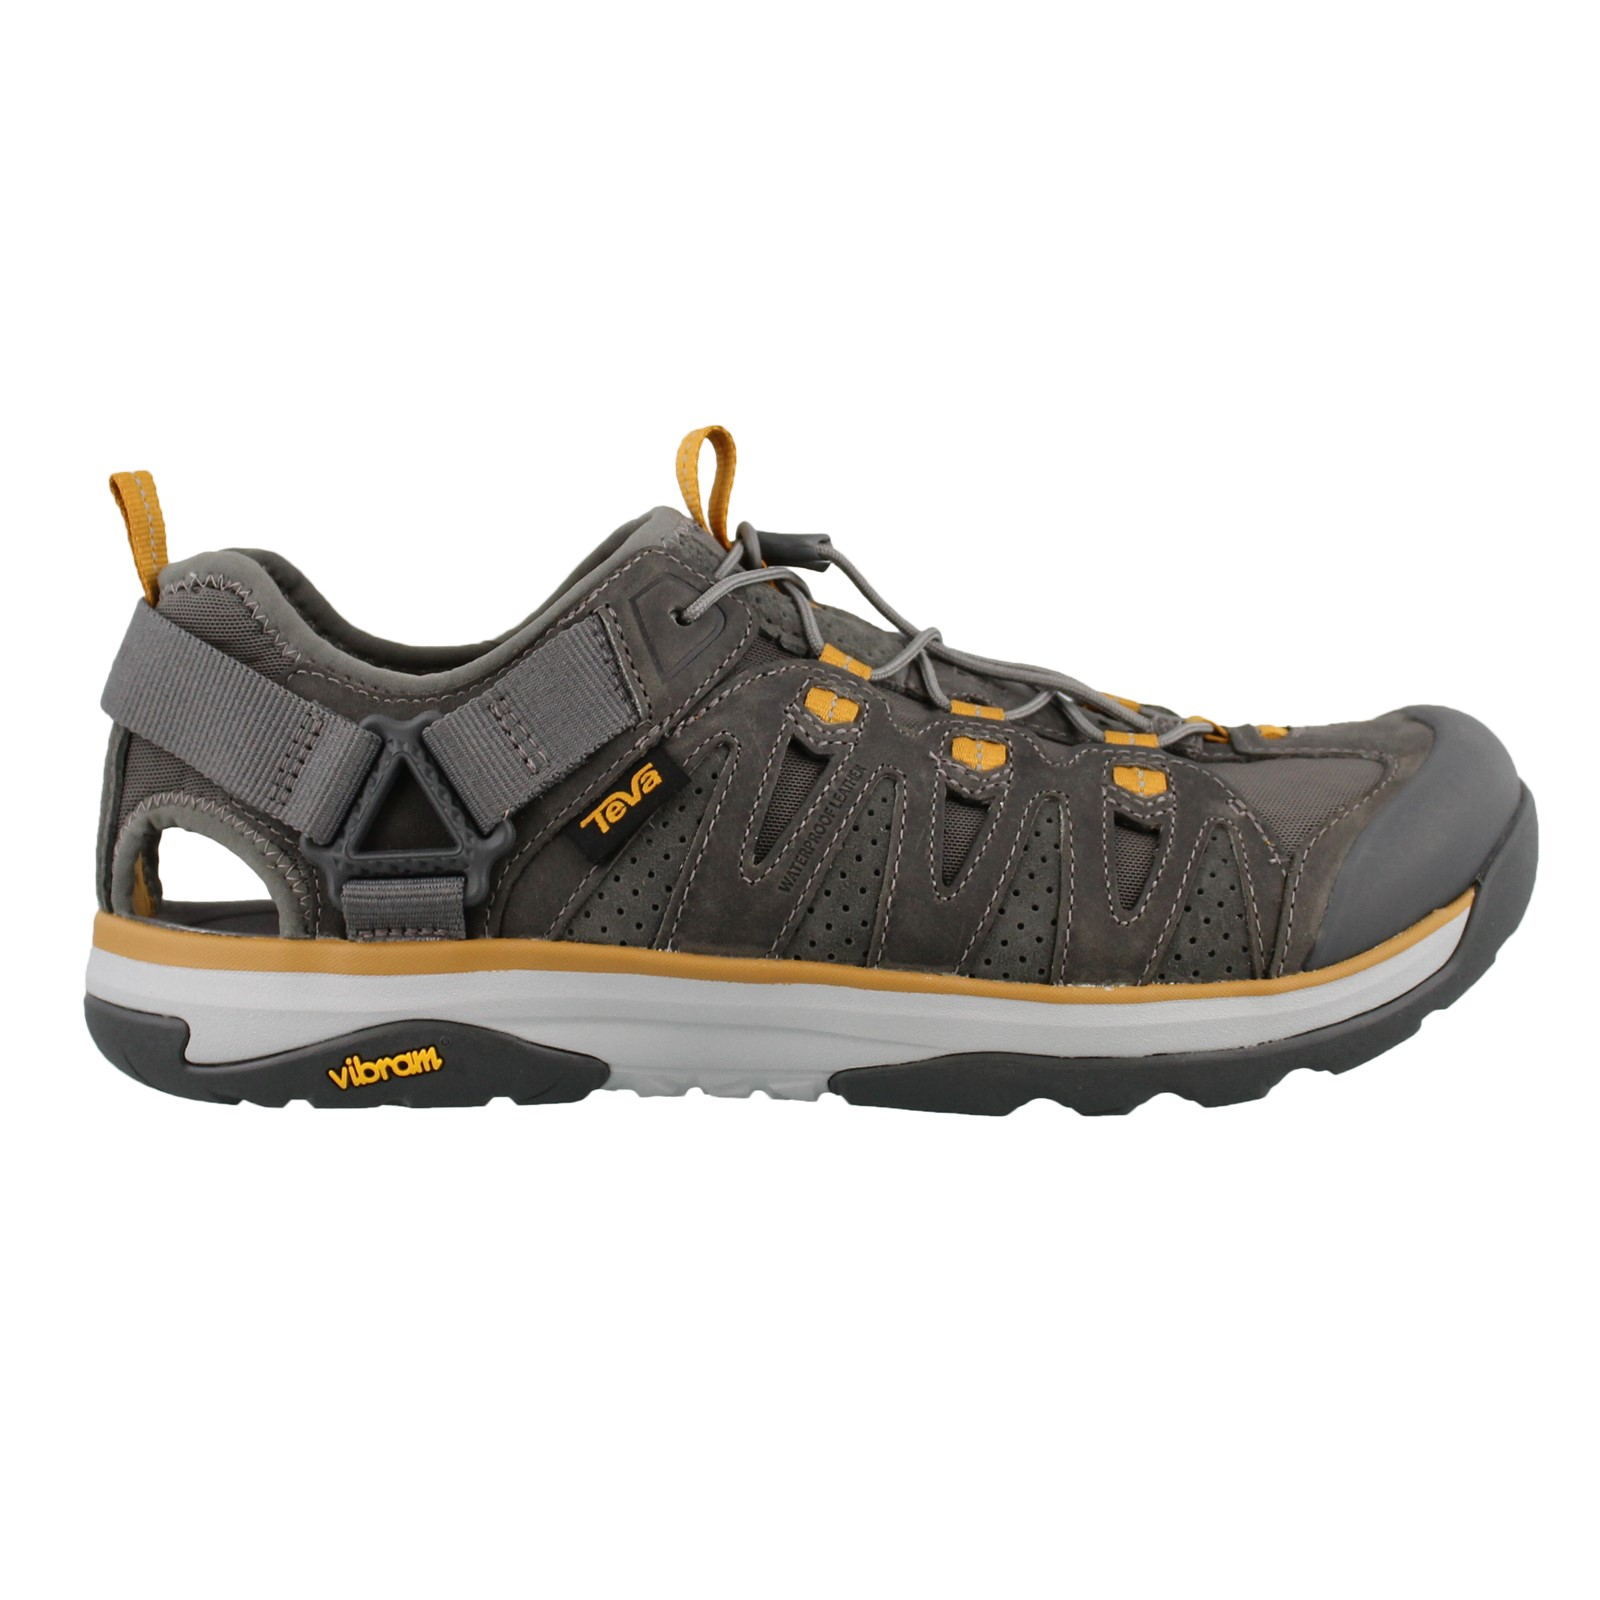 Men's Teva, Terra Float Active Fisherman Sandals